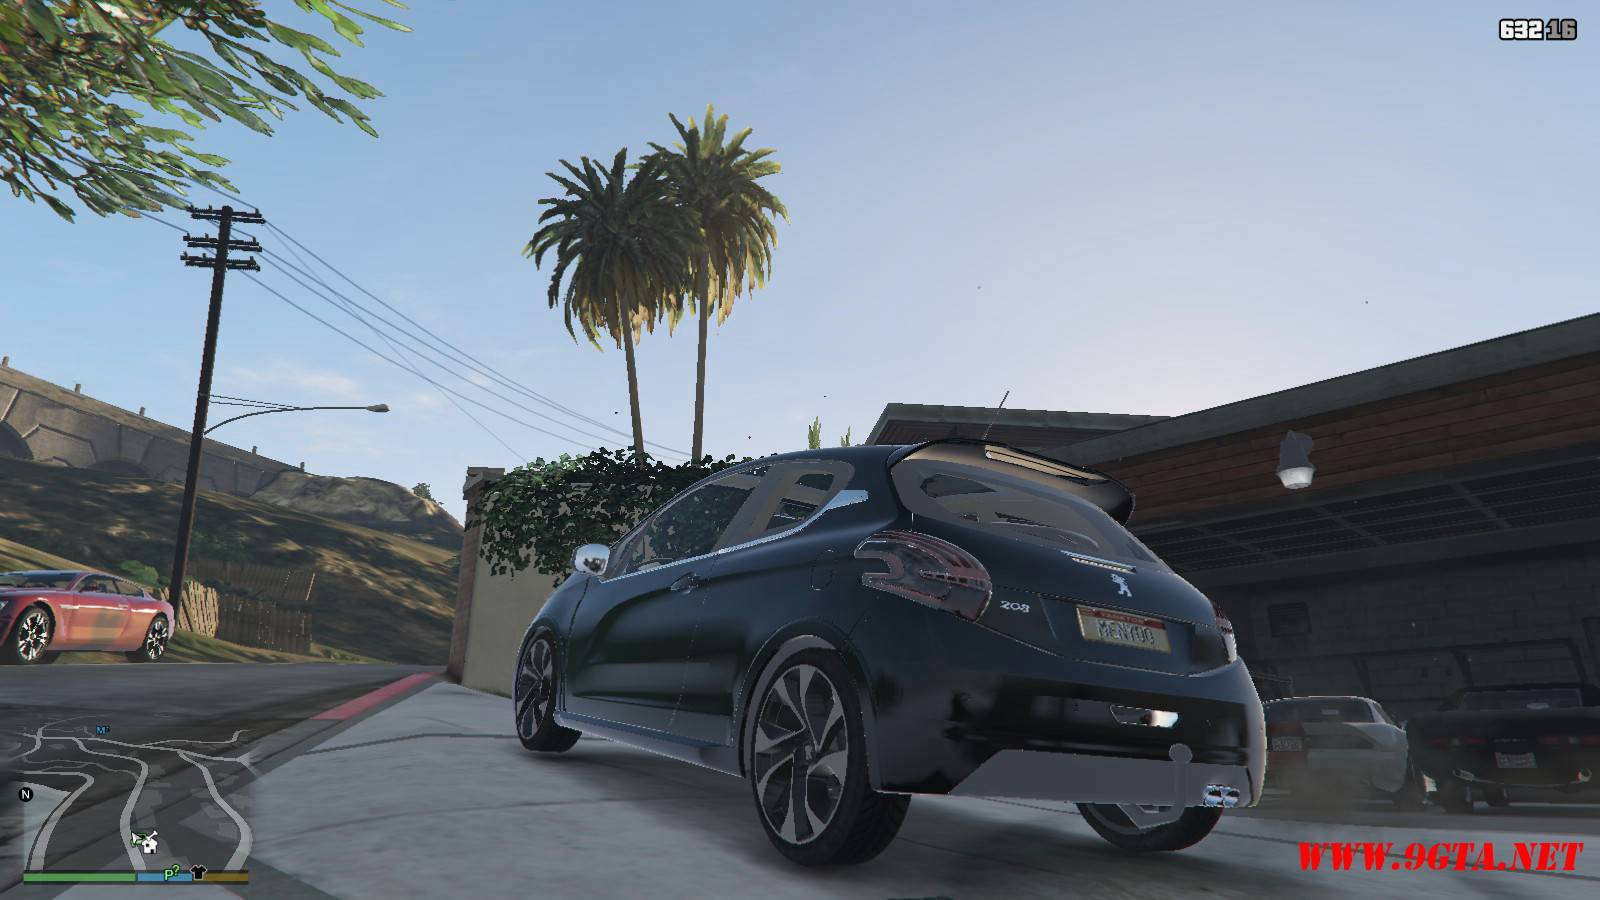 Peugeot 208 Mod For GTA5 (4)